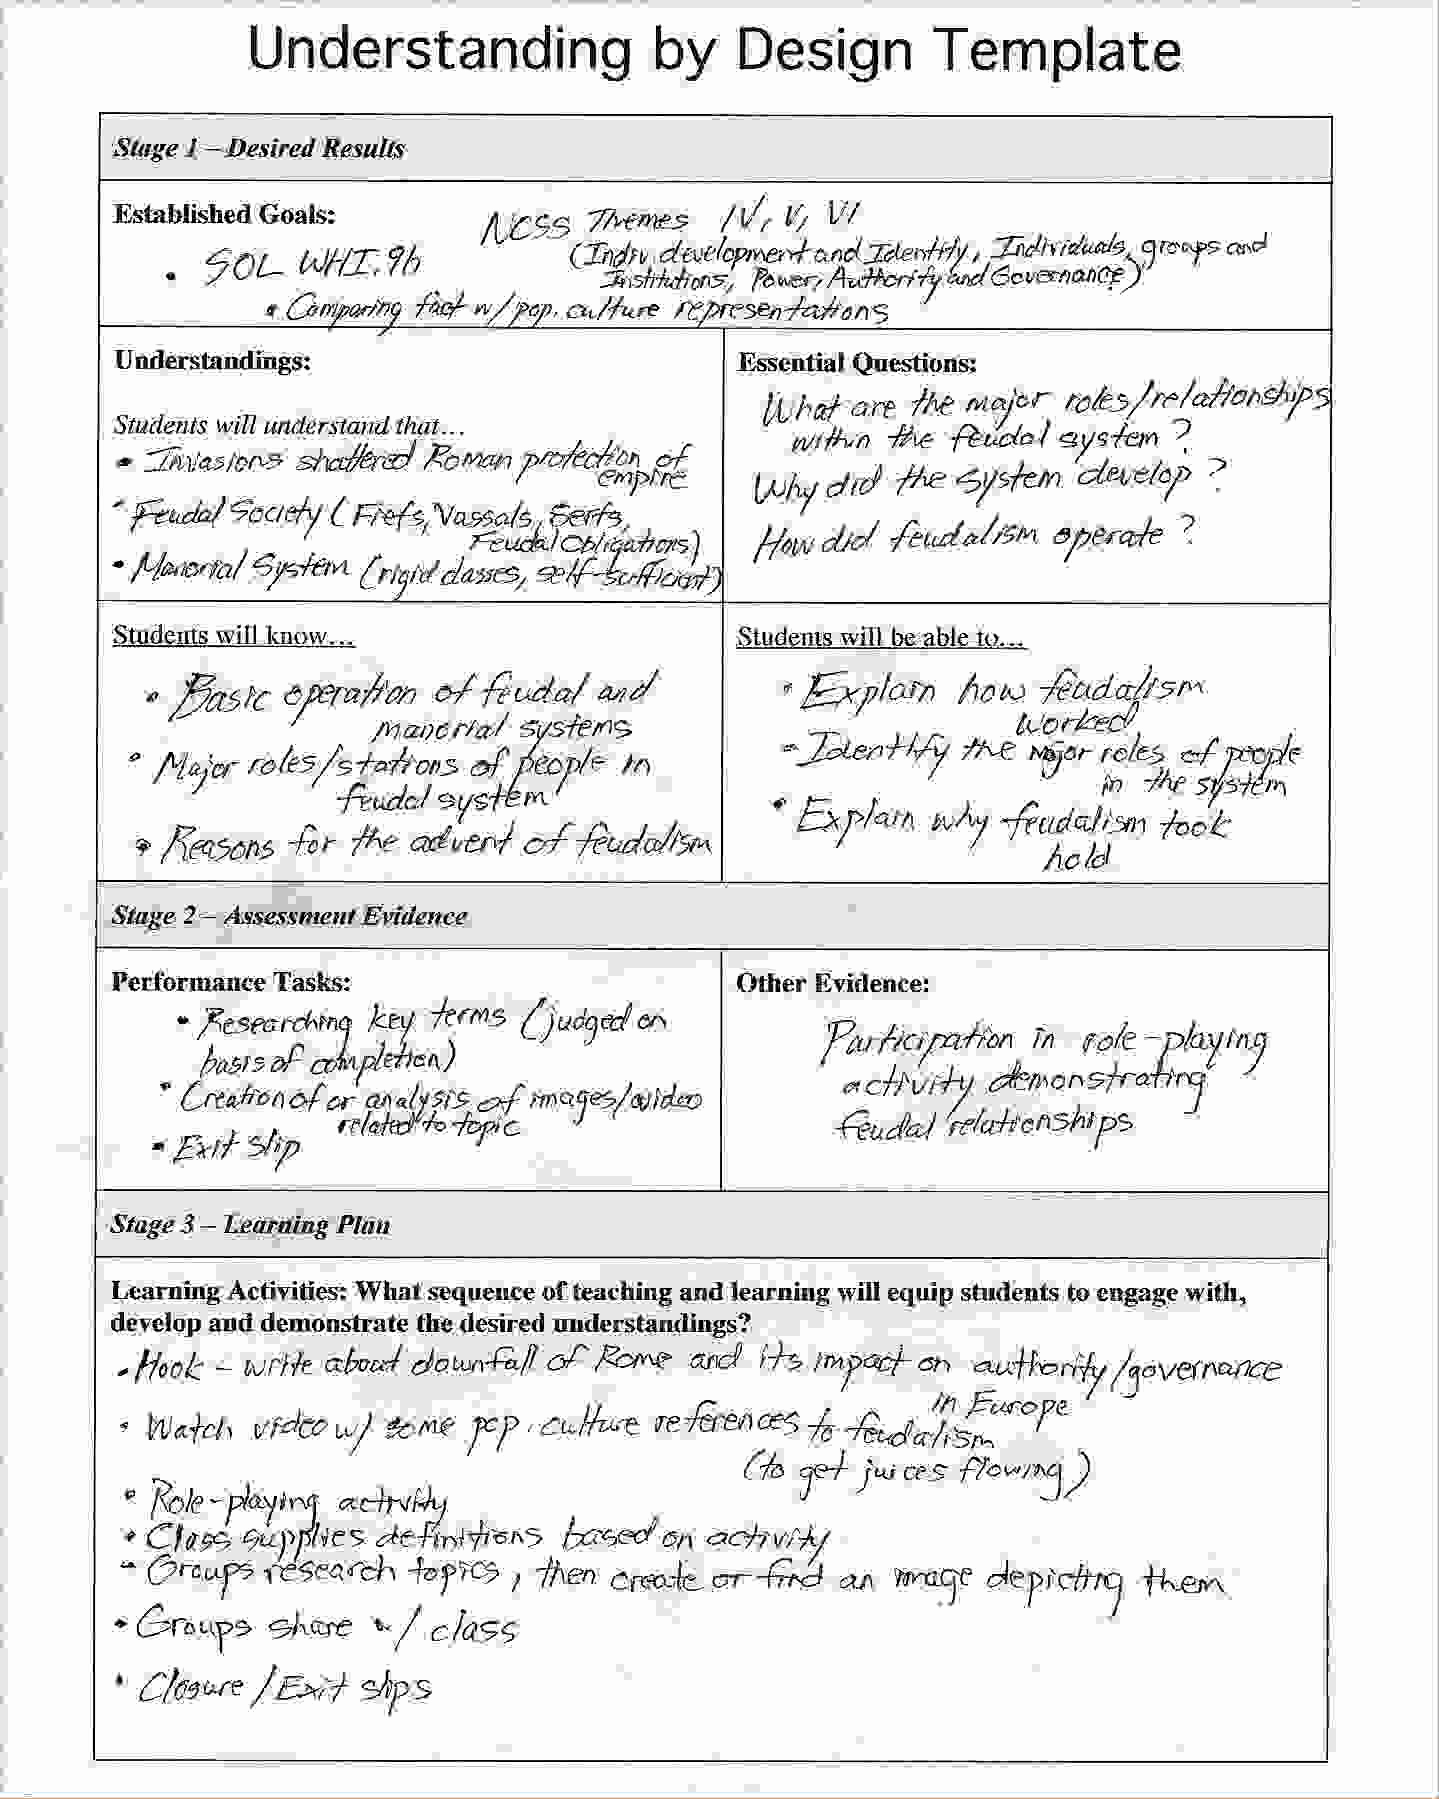 Unit Lesson Plan Template Beautiful Understanding by Design Template